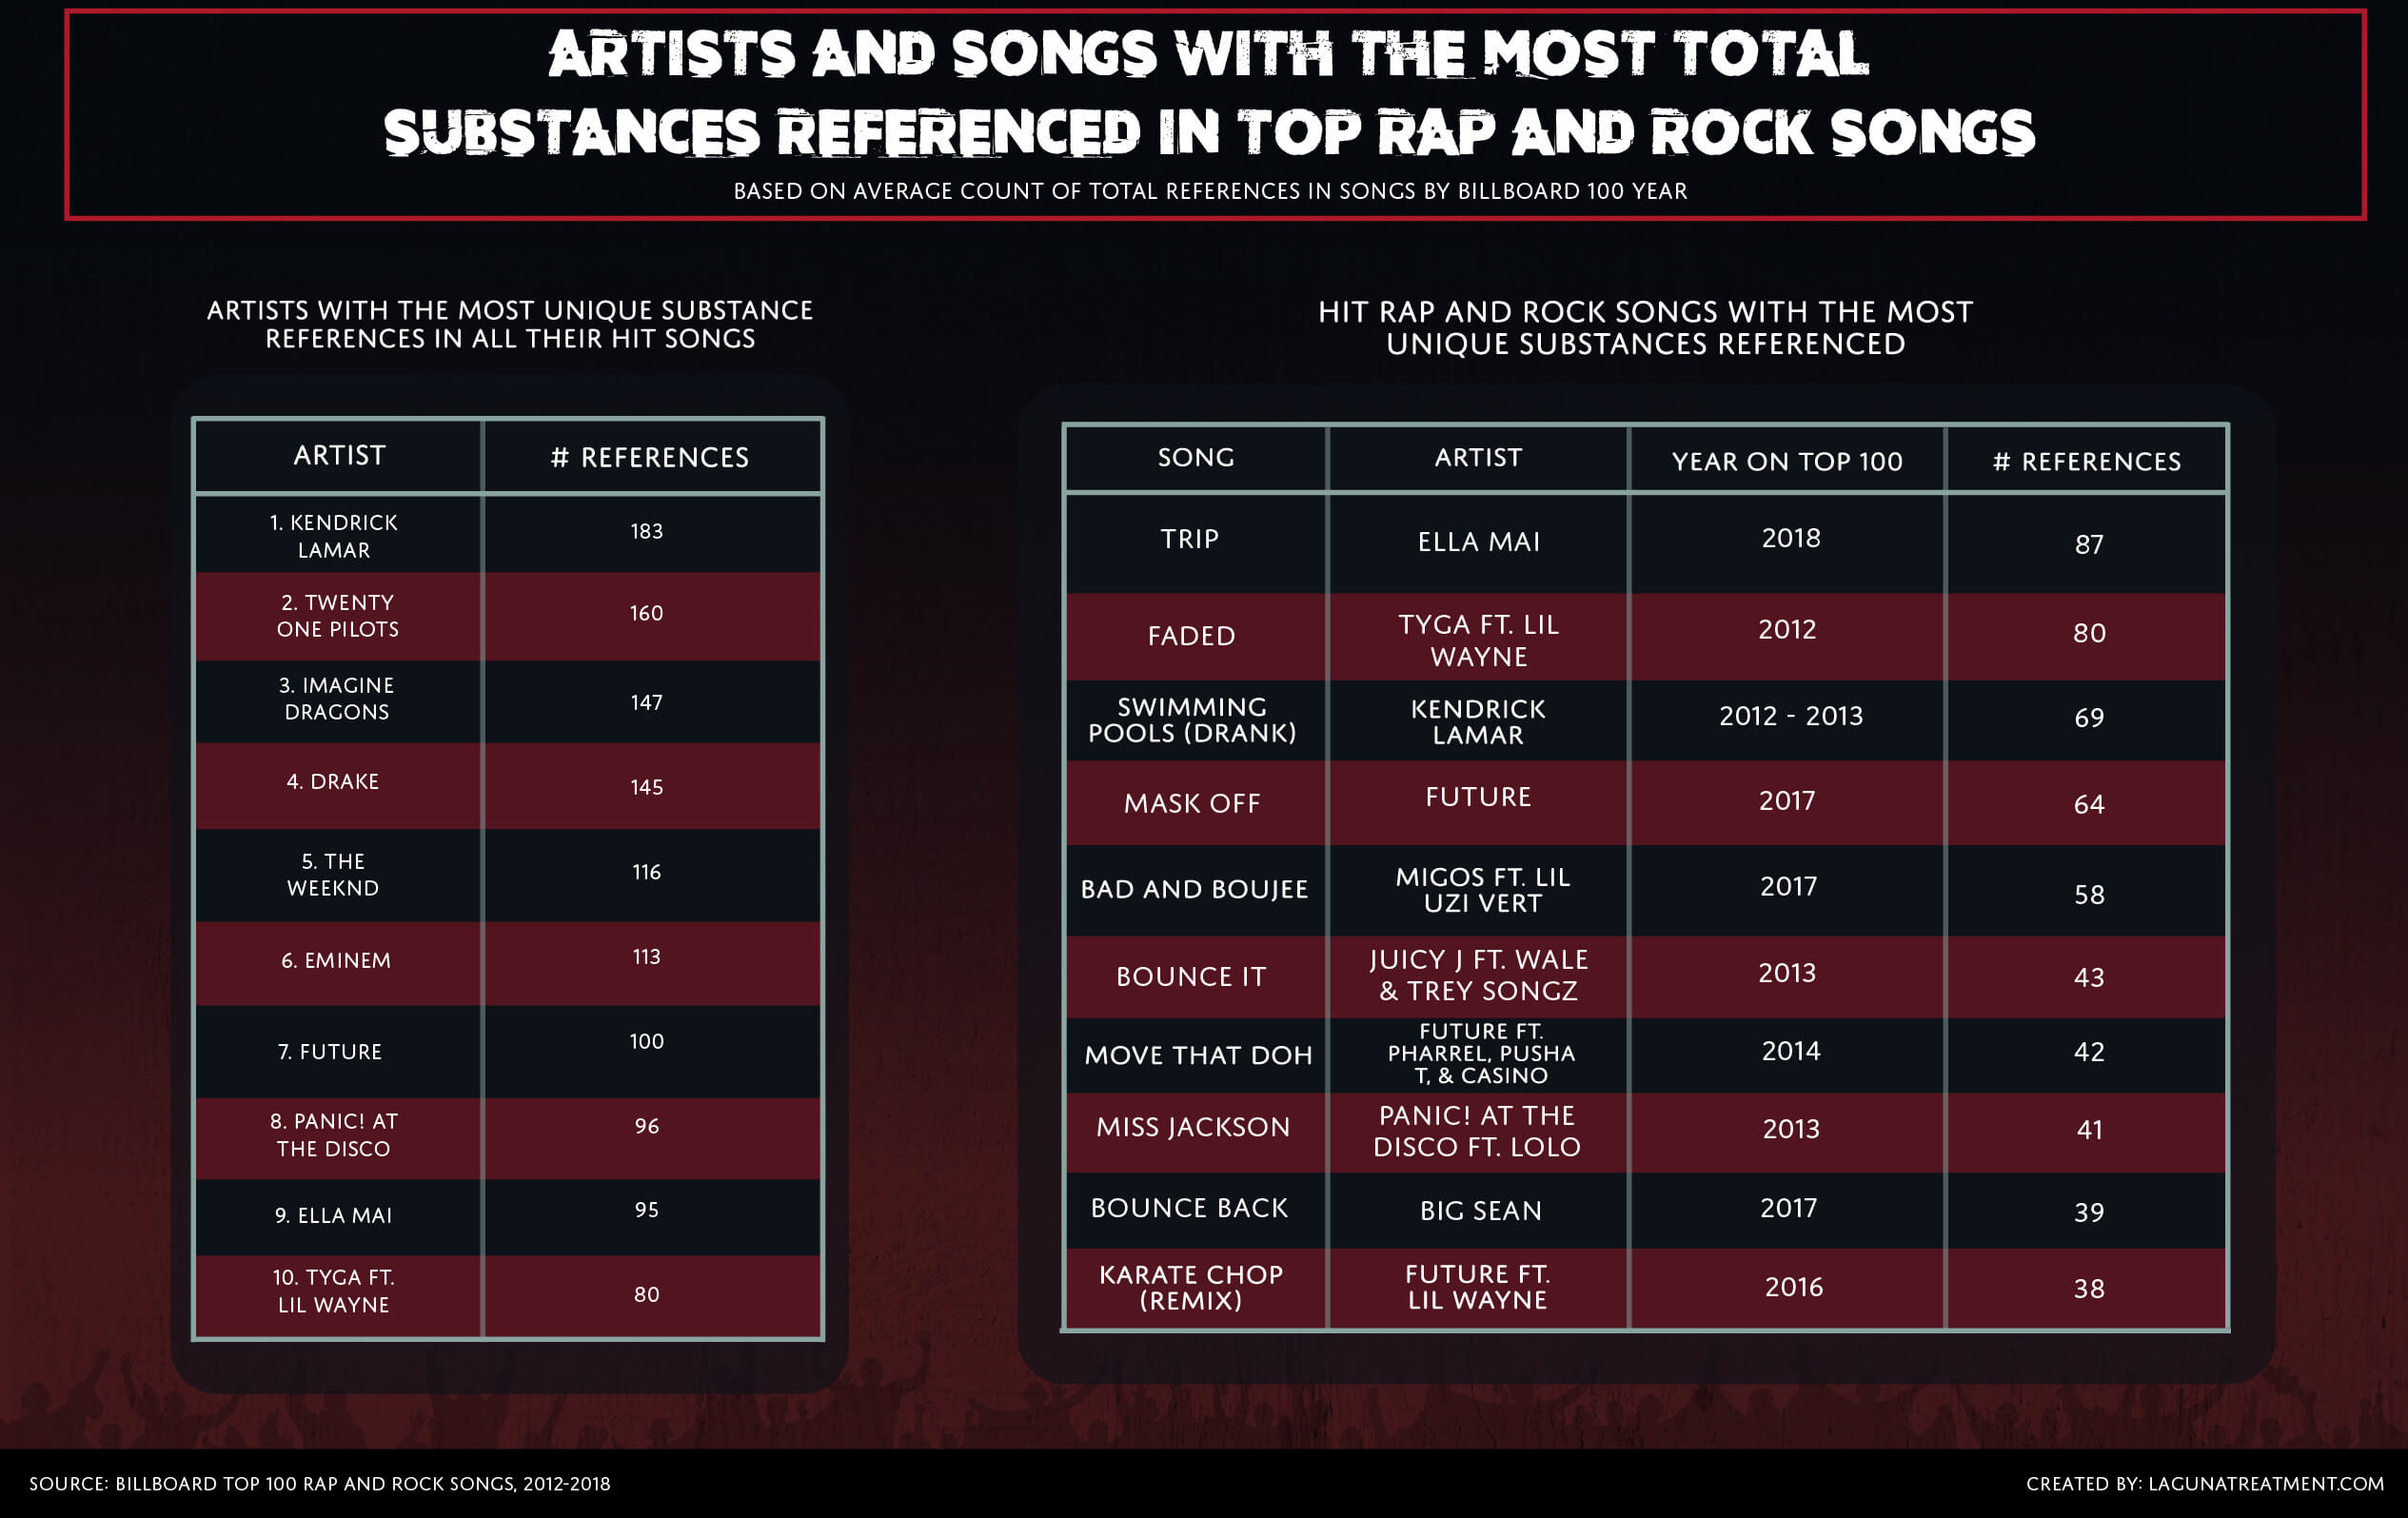 Artists and Songs with the Most Total Substances Referenced in Top Rap and Rock Songs Chart